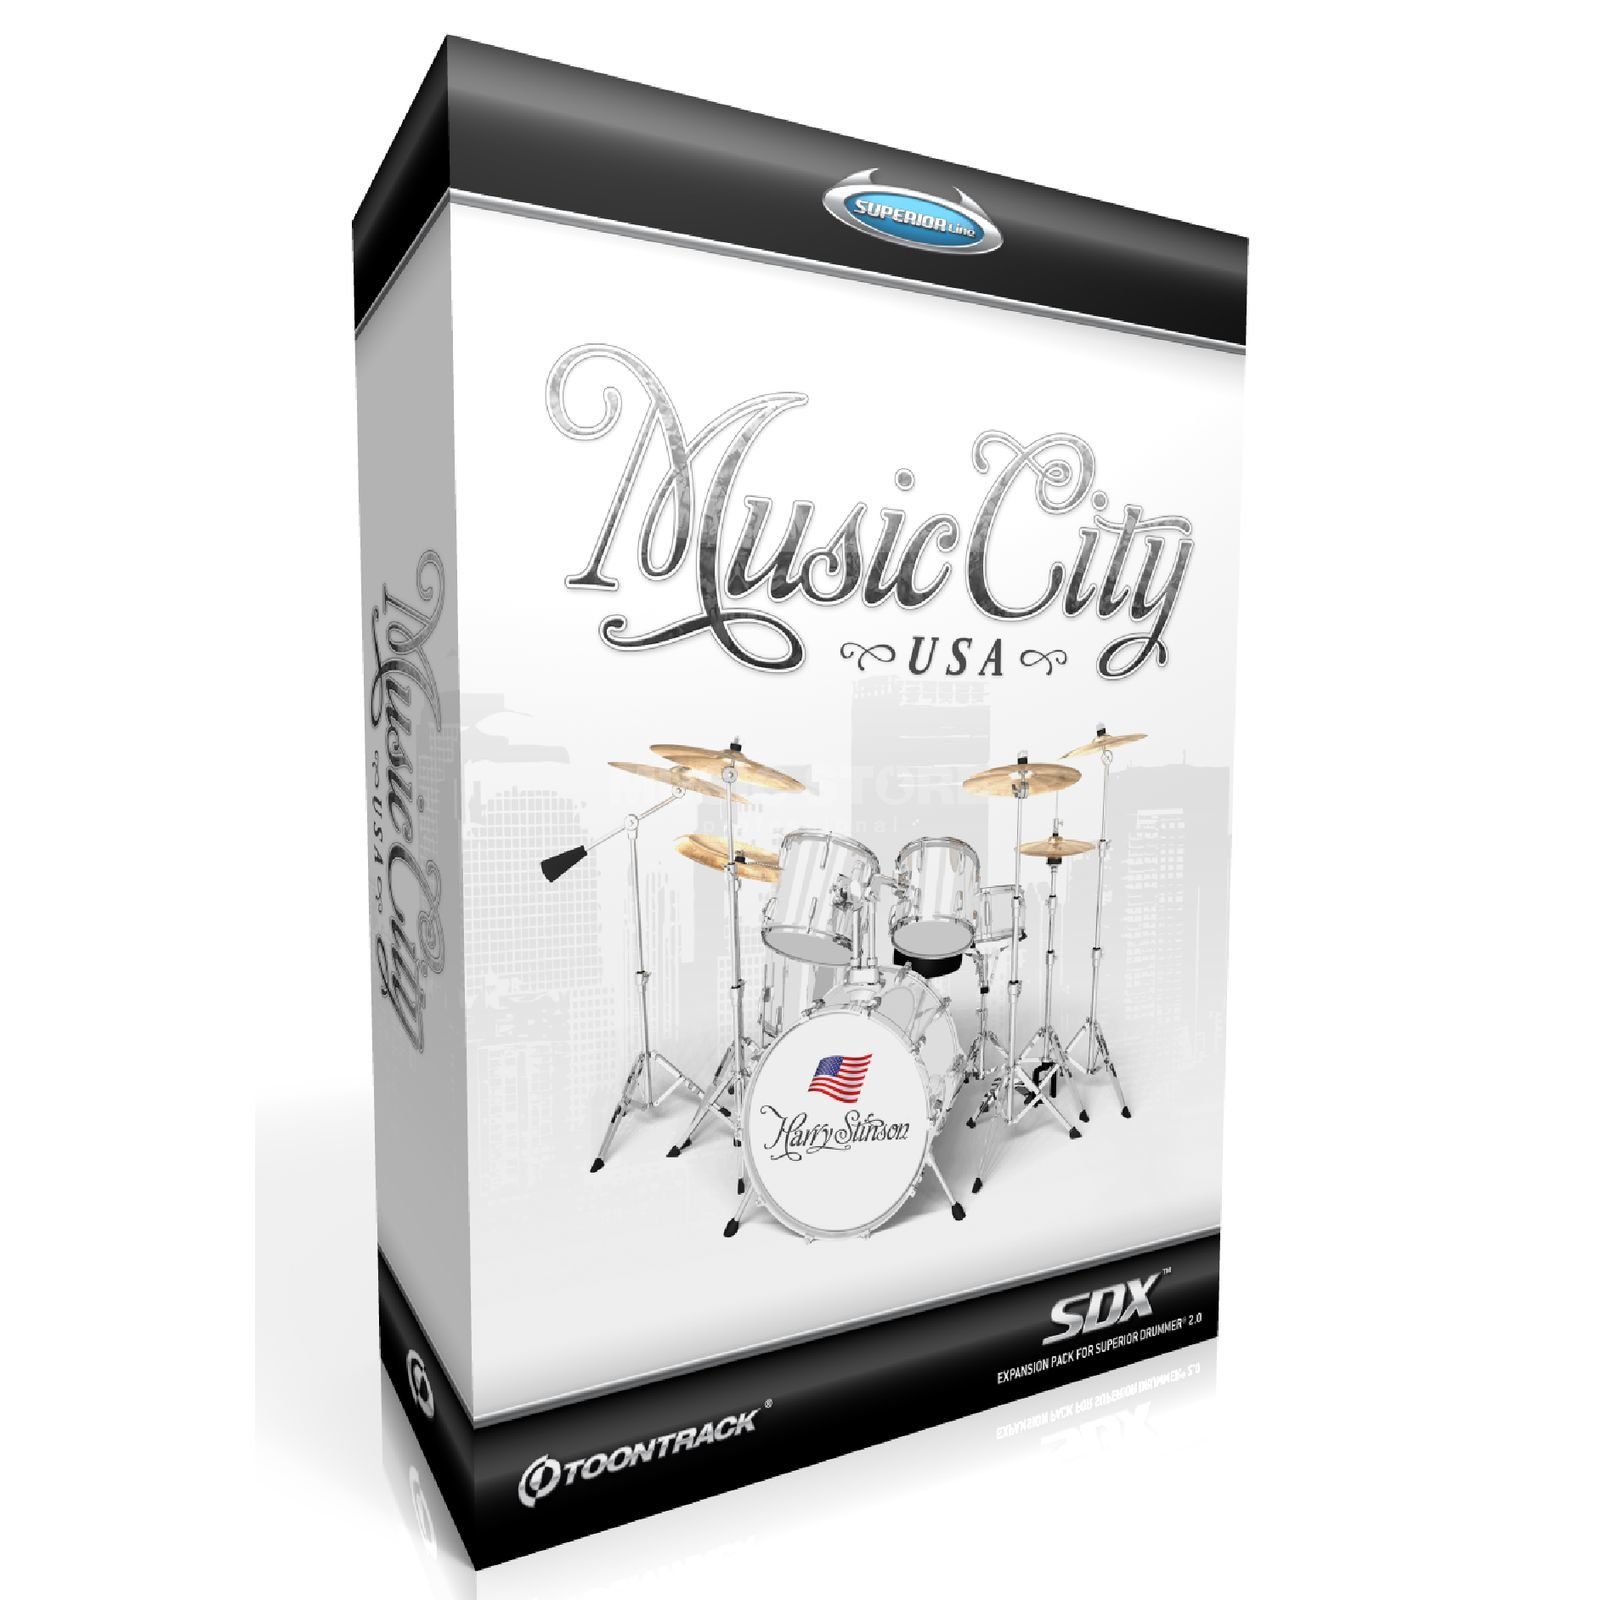 Toontrack SDX Music City USA Superior Drummer Library Product Image